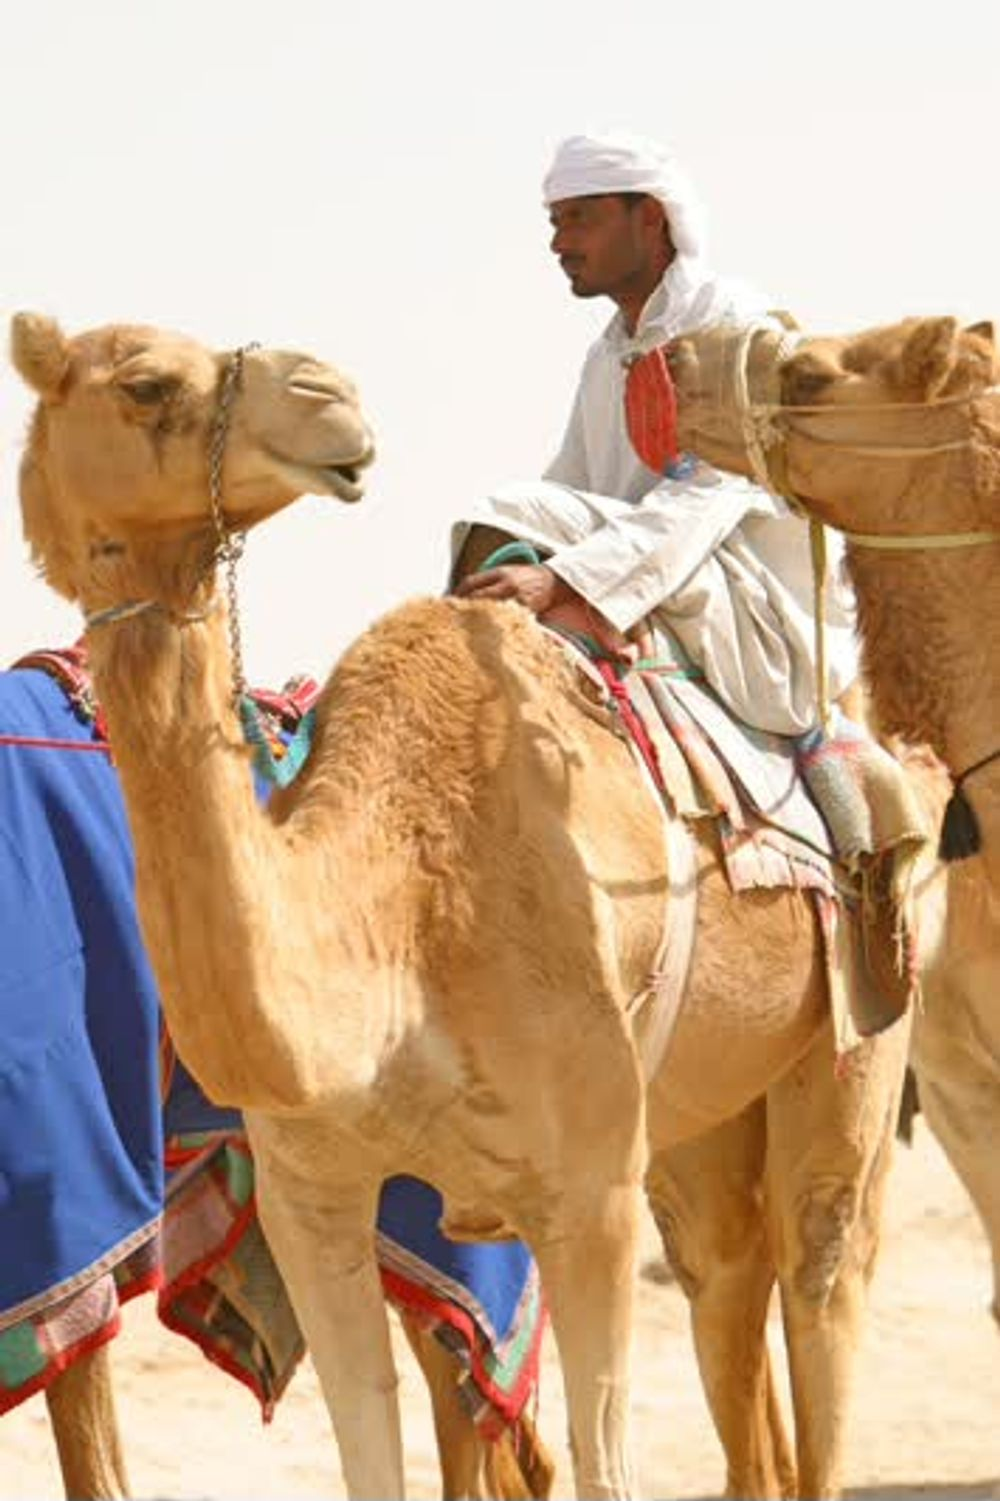 title: Camel in the Desert